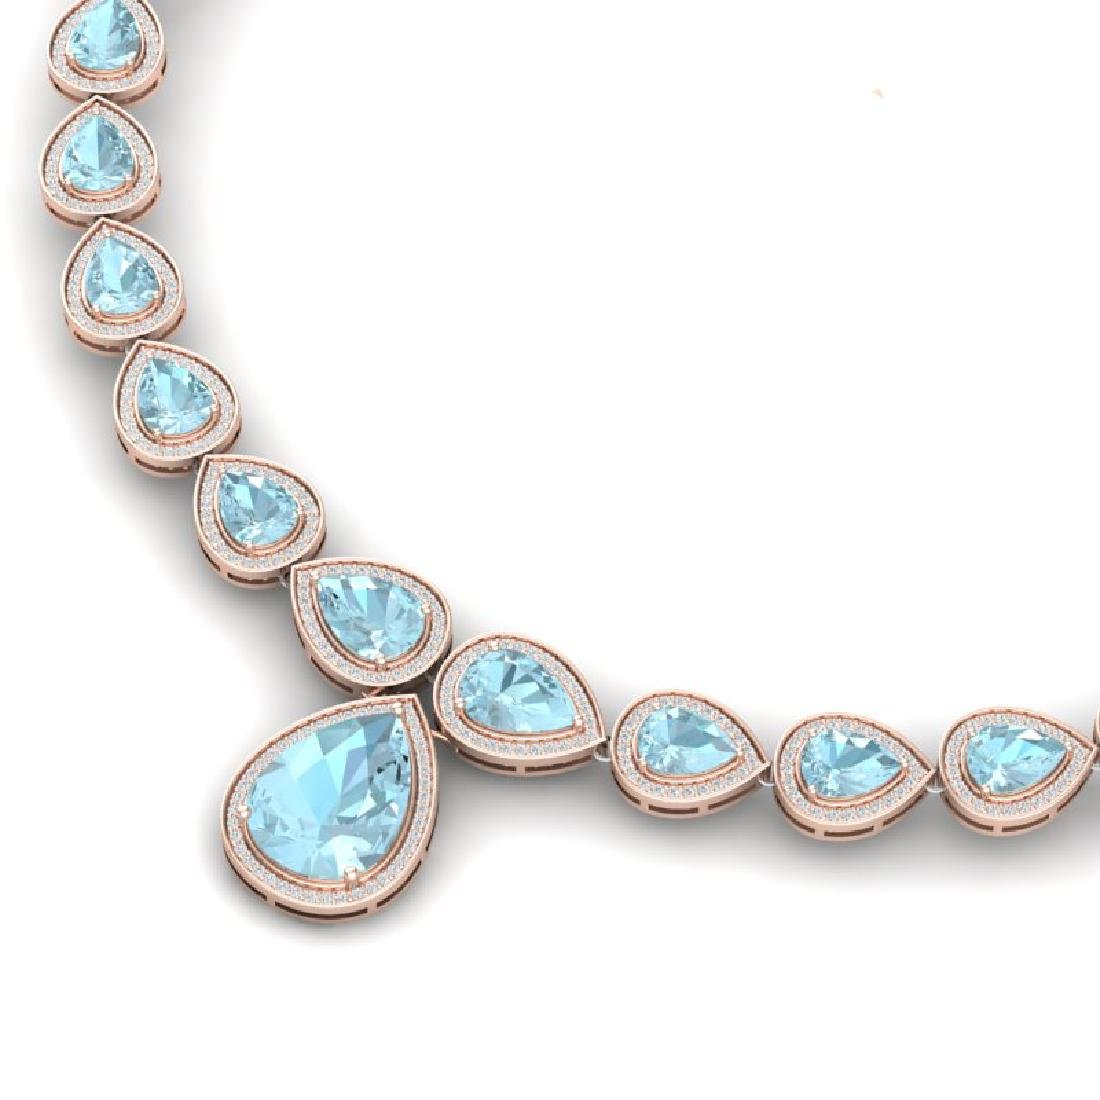 54 CTW Royalty Sky Topaz & VS Diamond Necklace 18K Rose - 2